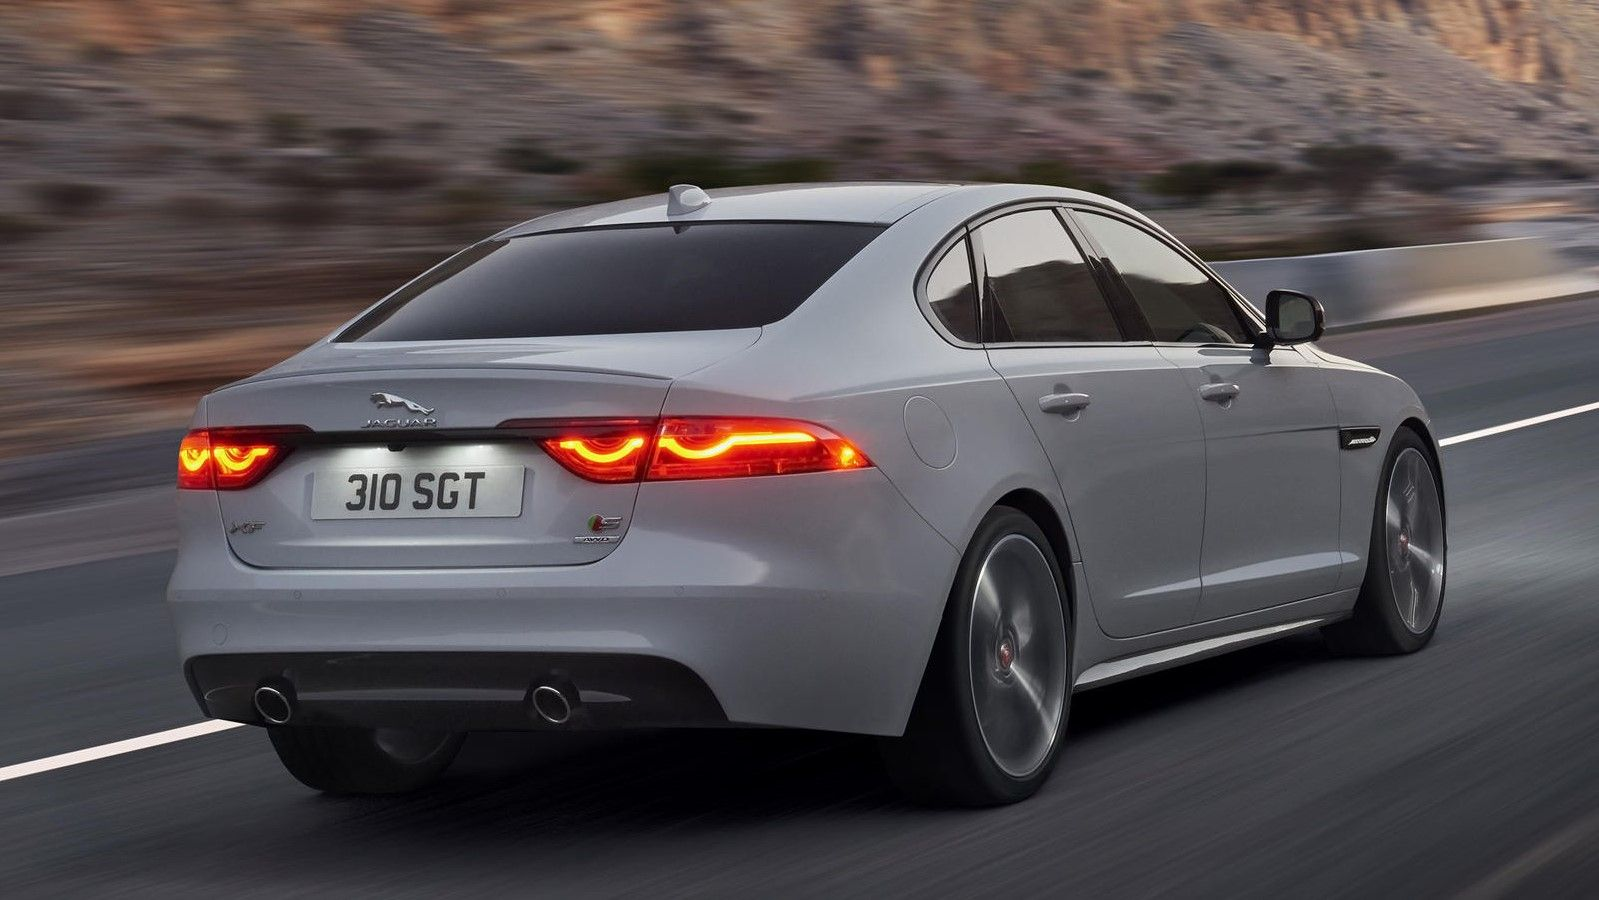 2020 Jauar XF sedan rear angle view